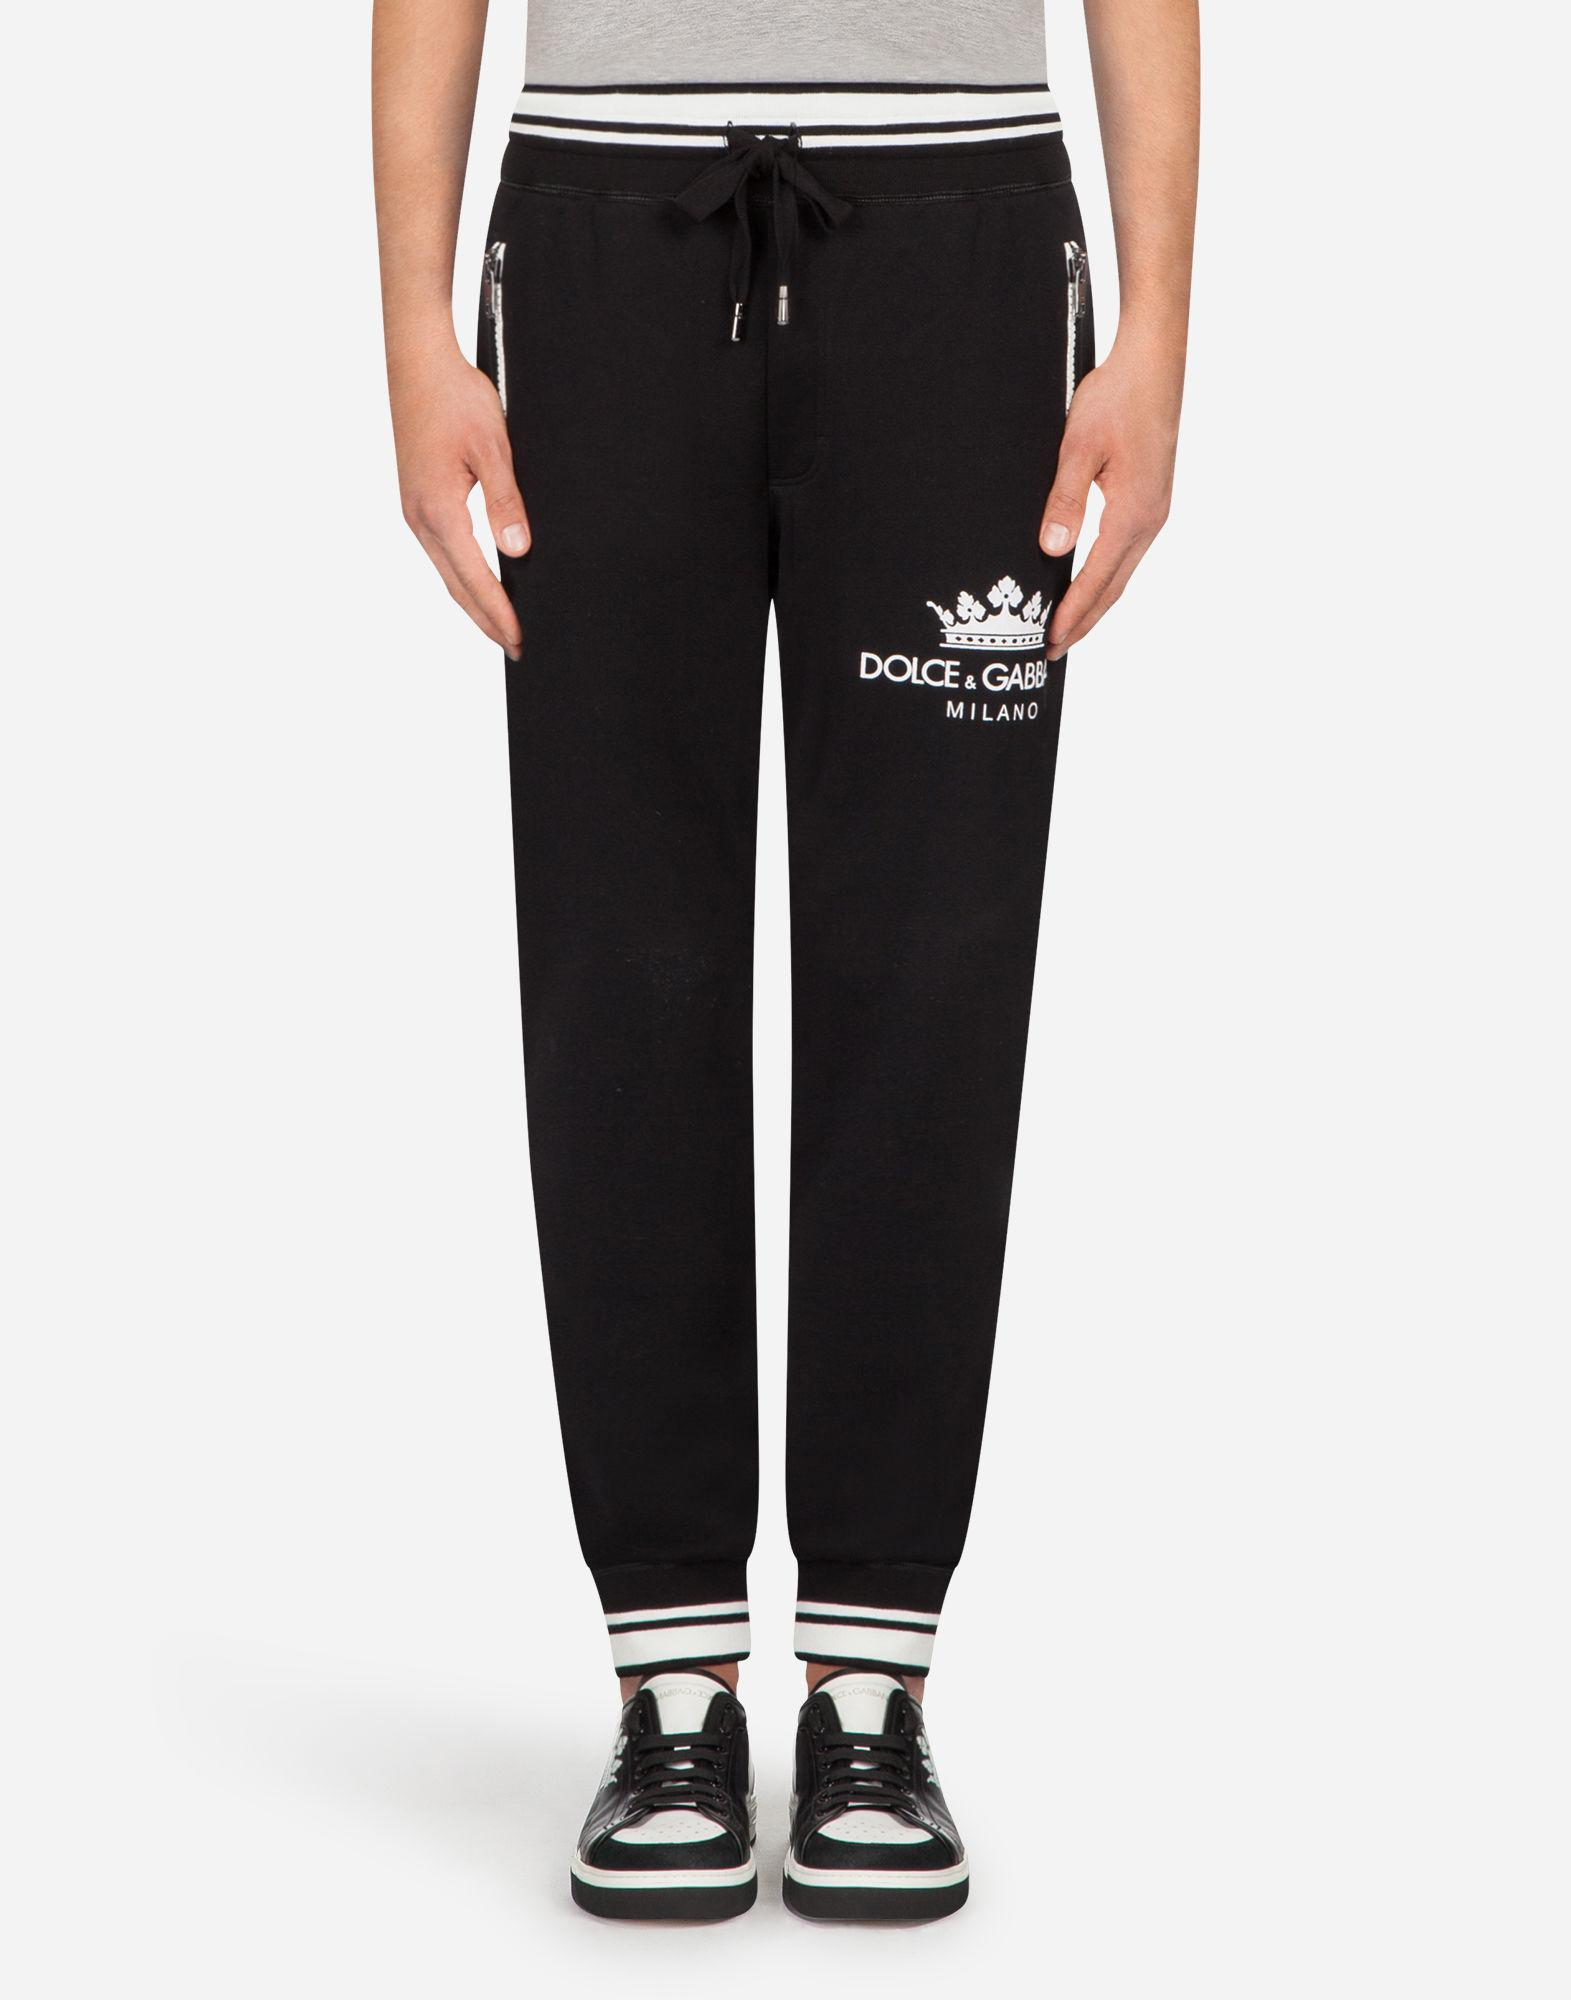 c020d8c62a7 Lyst - Dolce   Gabbana Cotton JOGGING Pants With Print in Black for Men